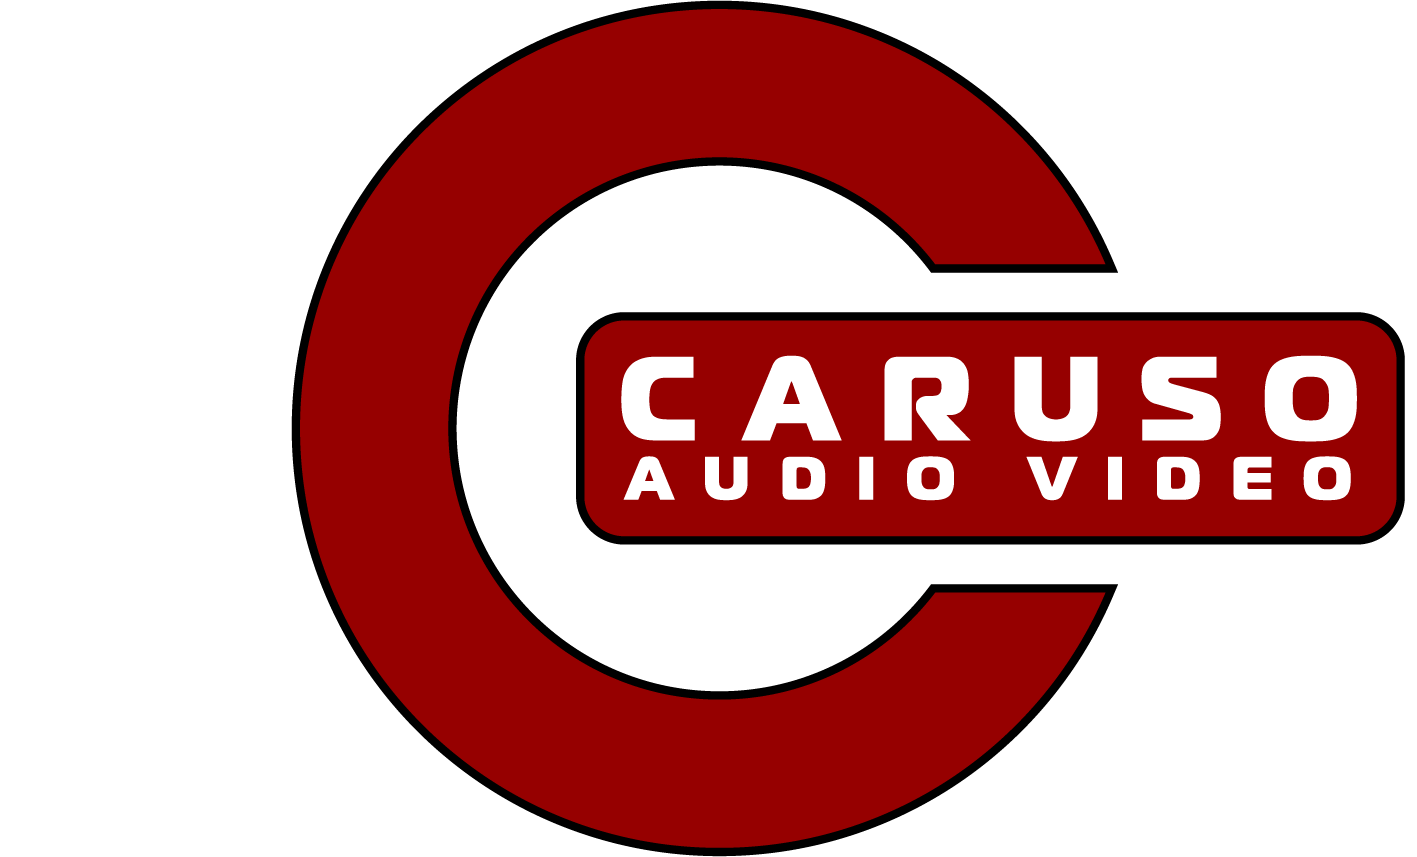 Caruso Audio Video Logo